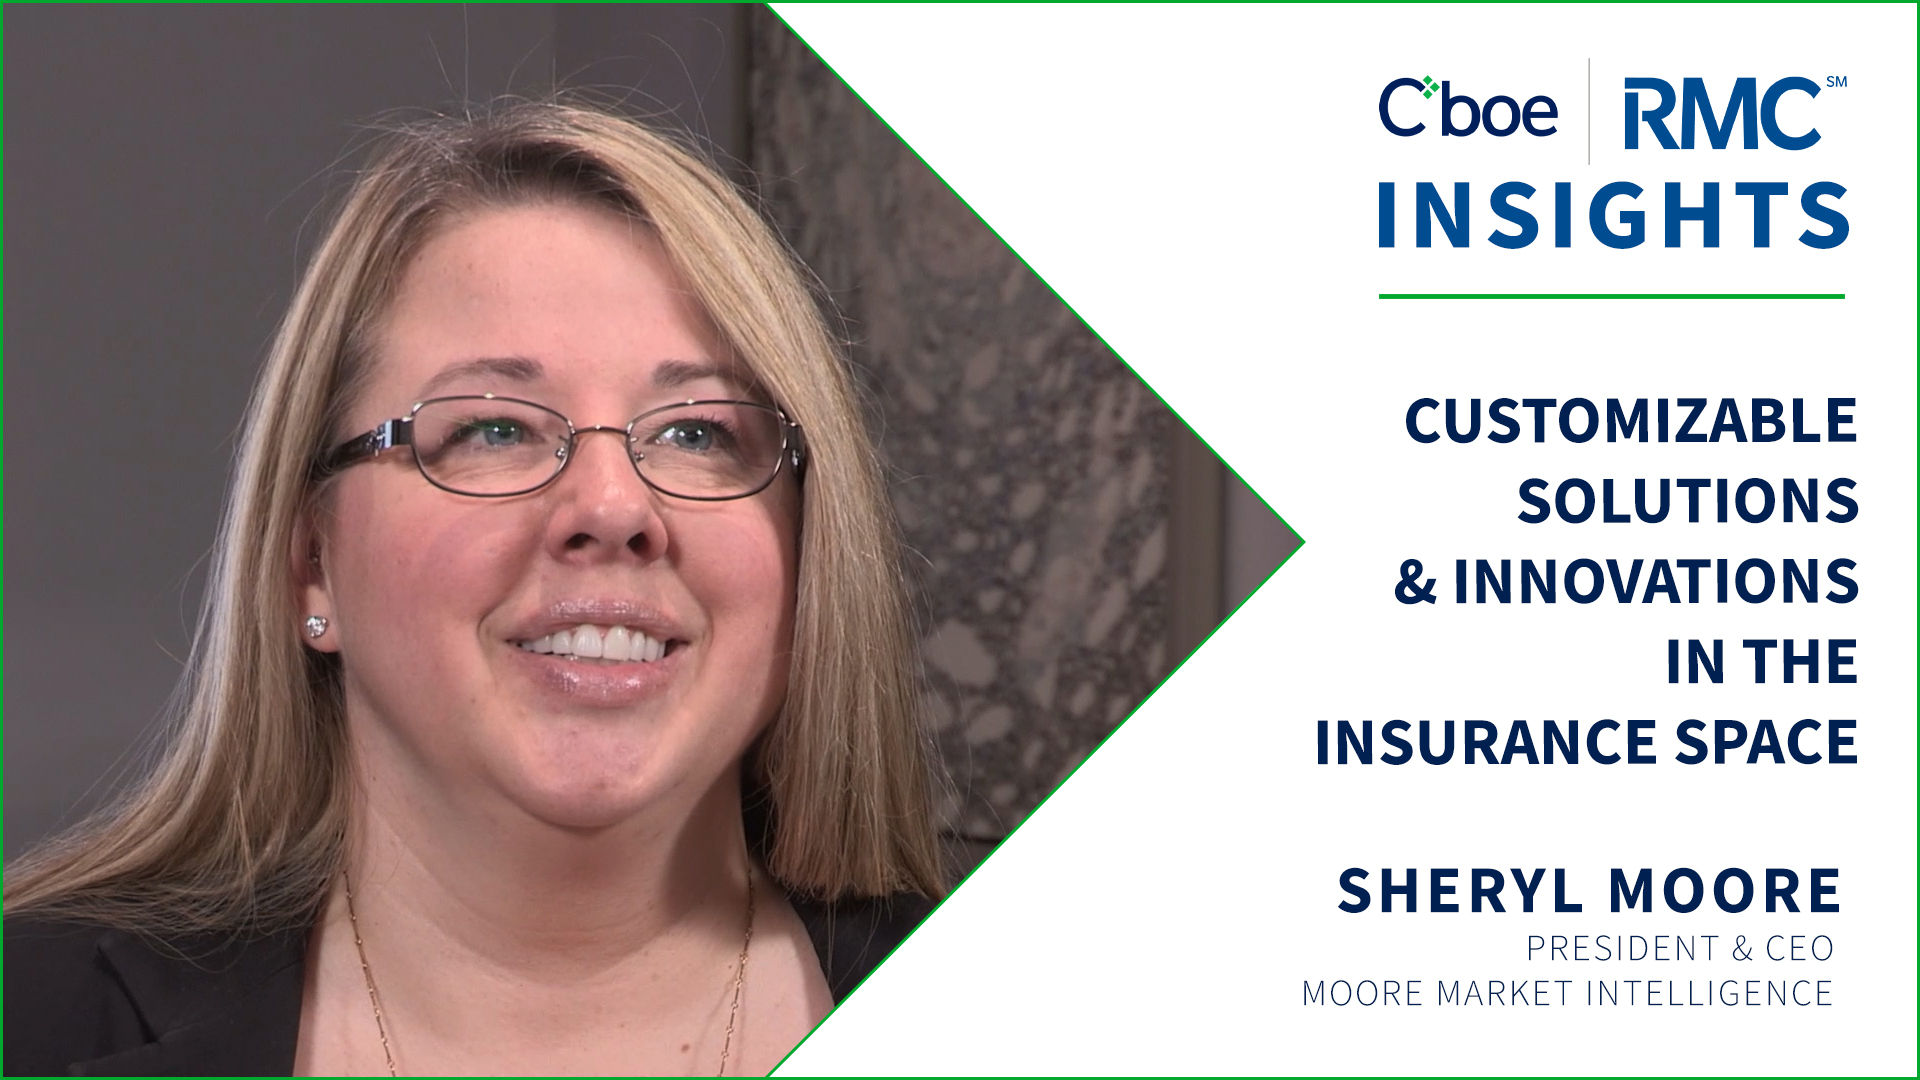 Customizable Solutions & Innovations in the Insurance Space | Sheryl Moore | RMC Insights Thumbnail